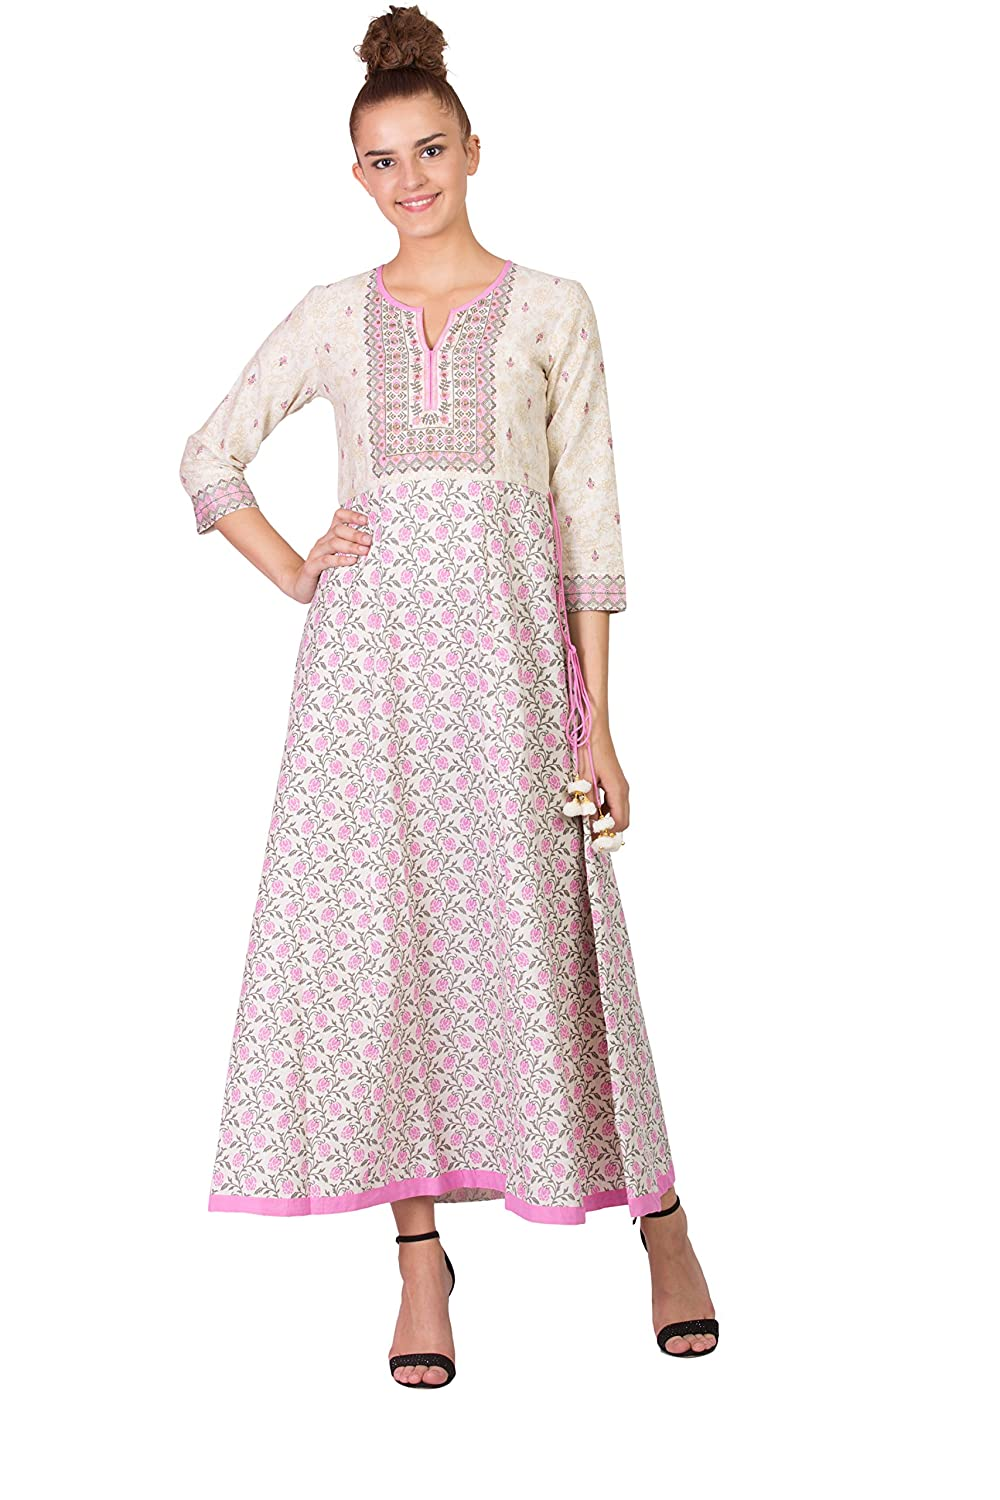 Beige Pink (186dh32xl SABHYATA Women's Kurta Ethnic Long Dress Pure Cotton Kurti Tops for Women Ladies Partywear